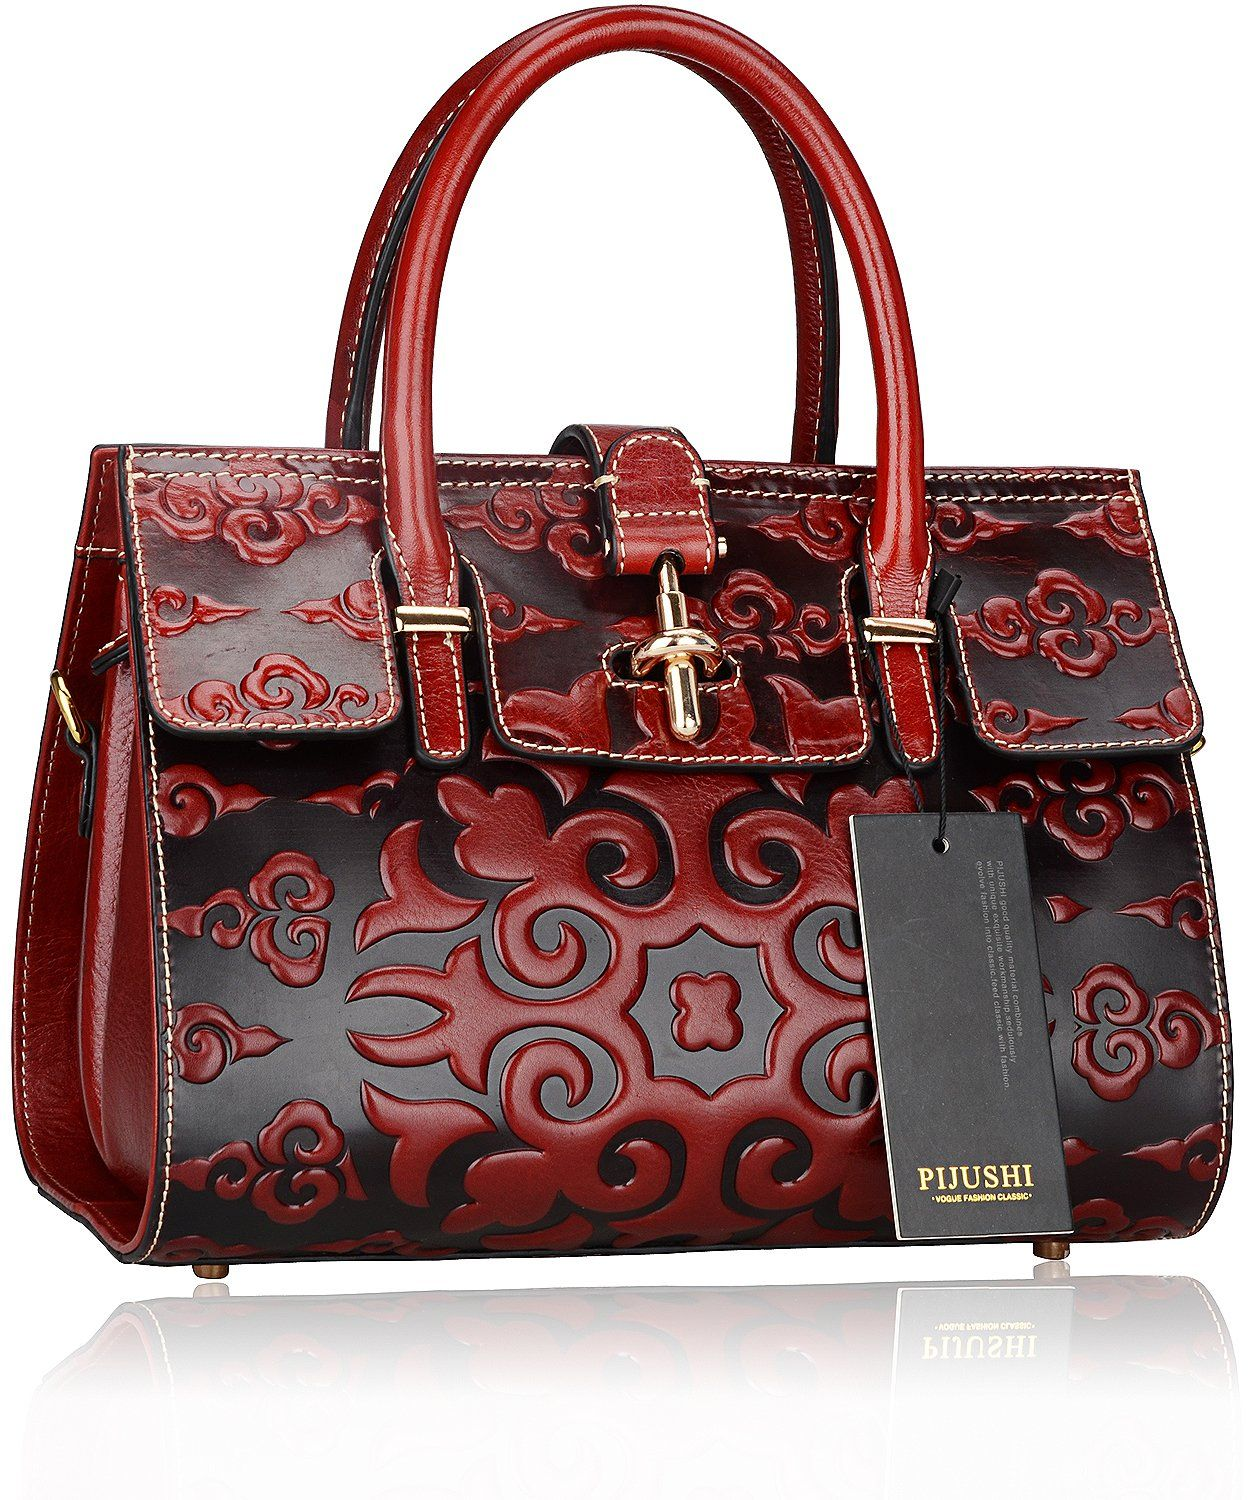 Pijushi Classic Ladies Embossed Floral Leather Tote Satchel Top Handle  Handbags 65098 (Red Luck Flower)  Handbags  AmazonSmile 084b29a05d4f3